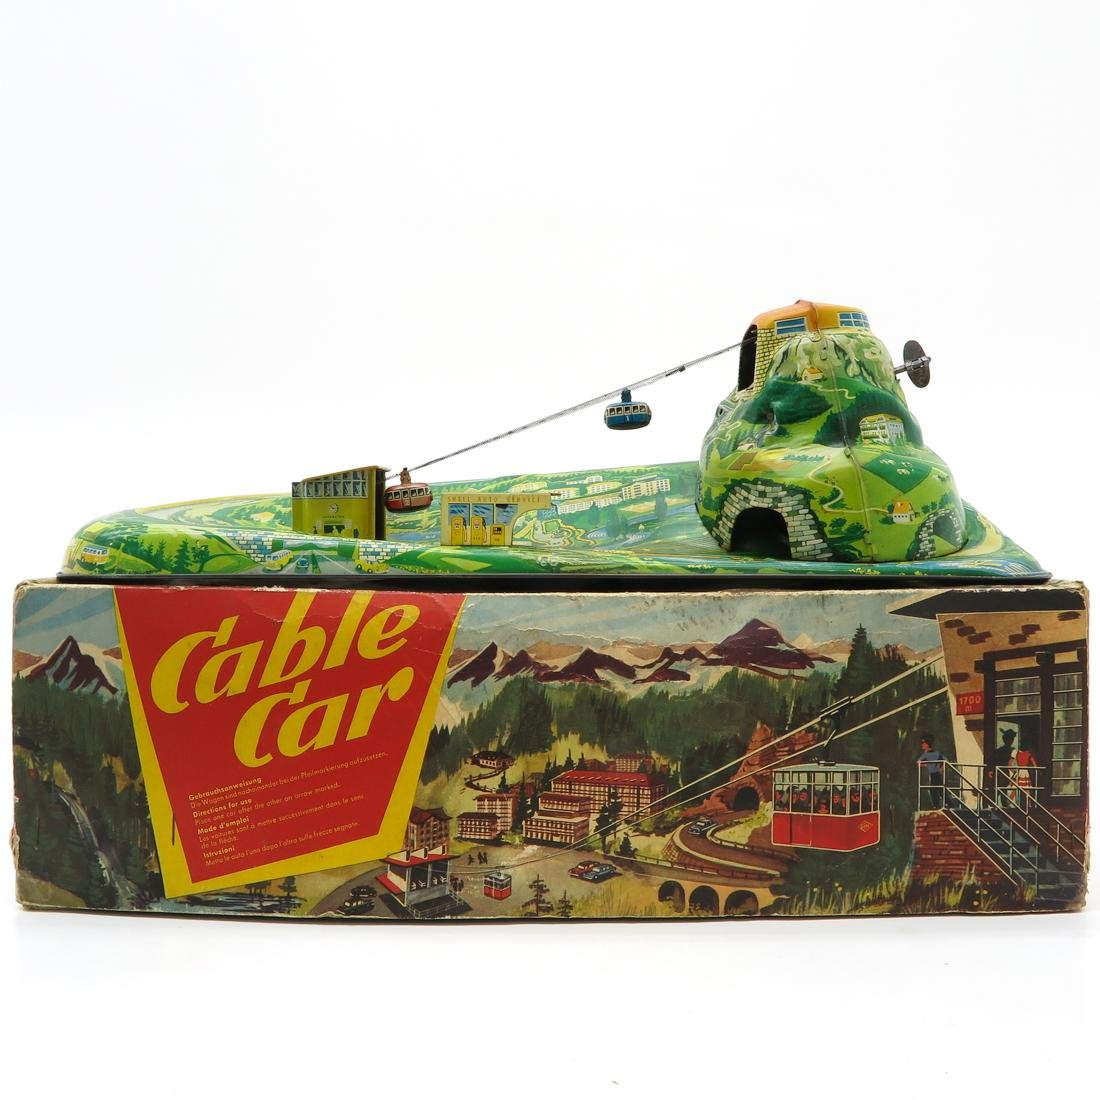 Vintage Technofix Cable Car In Box